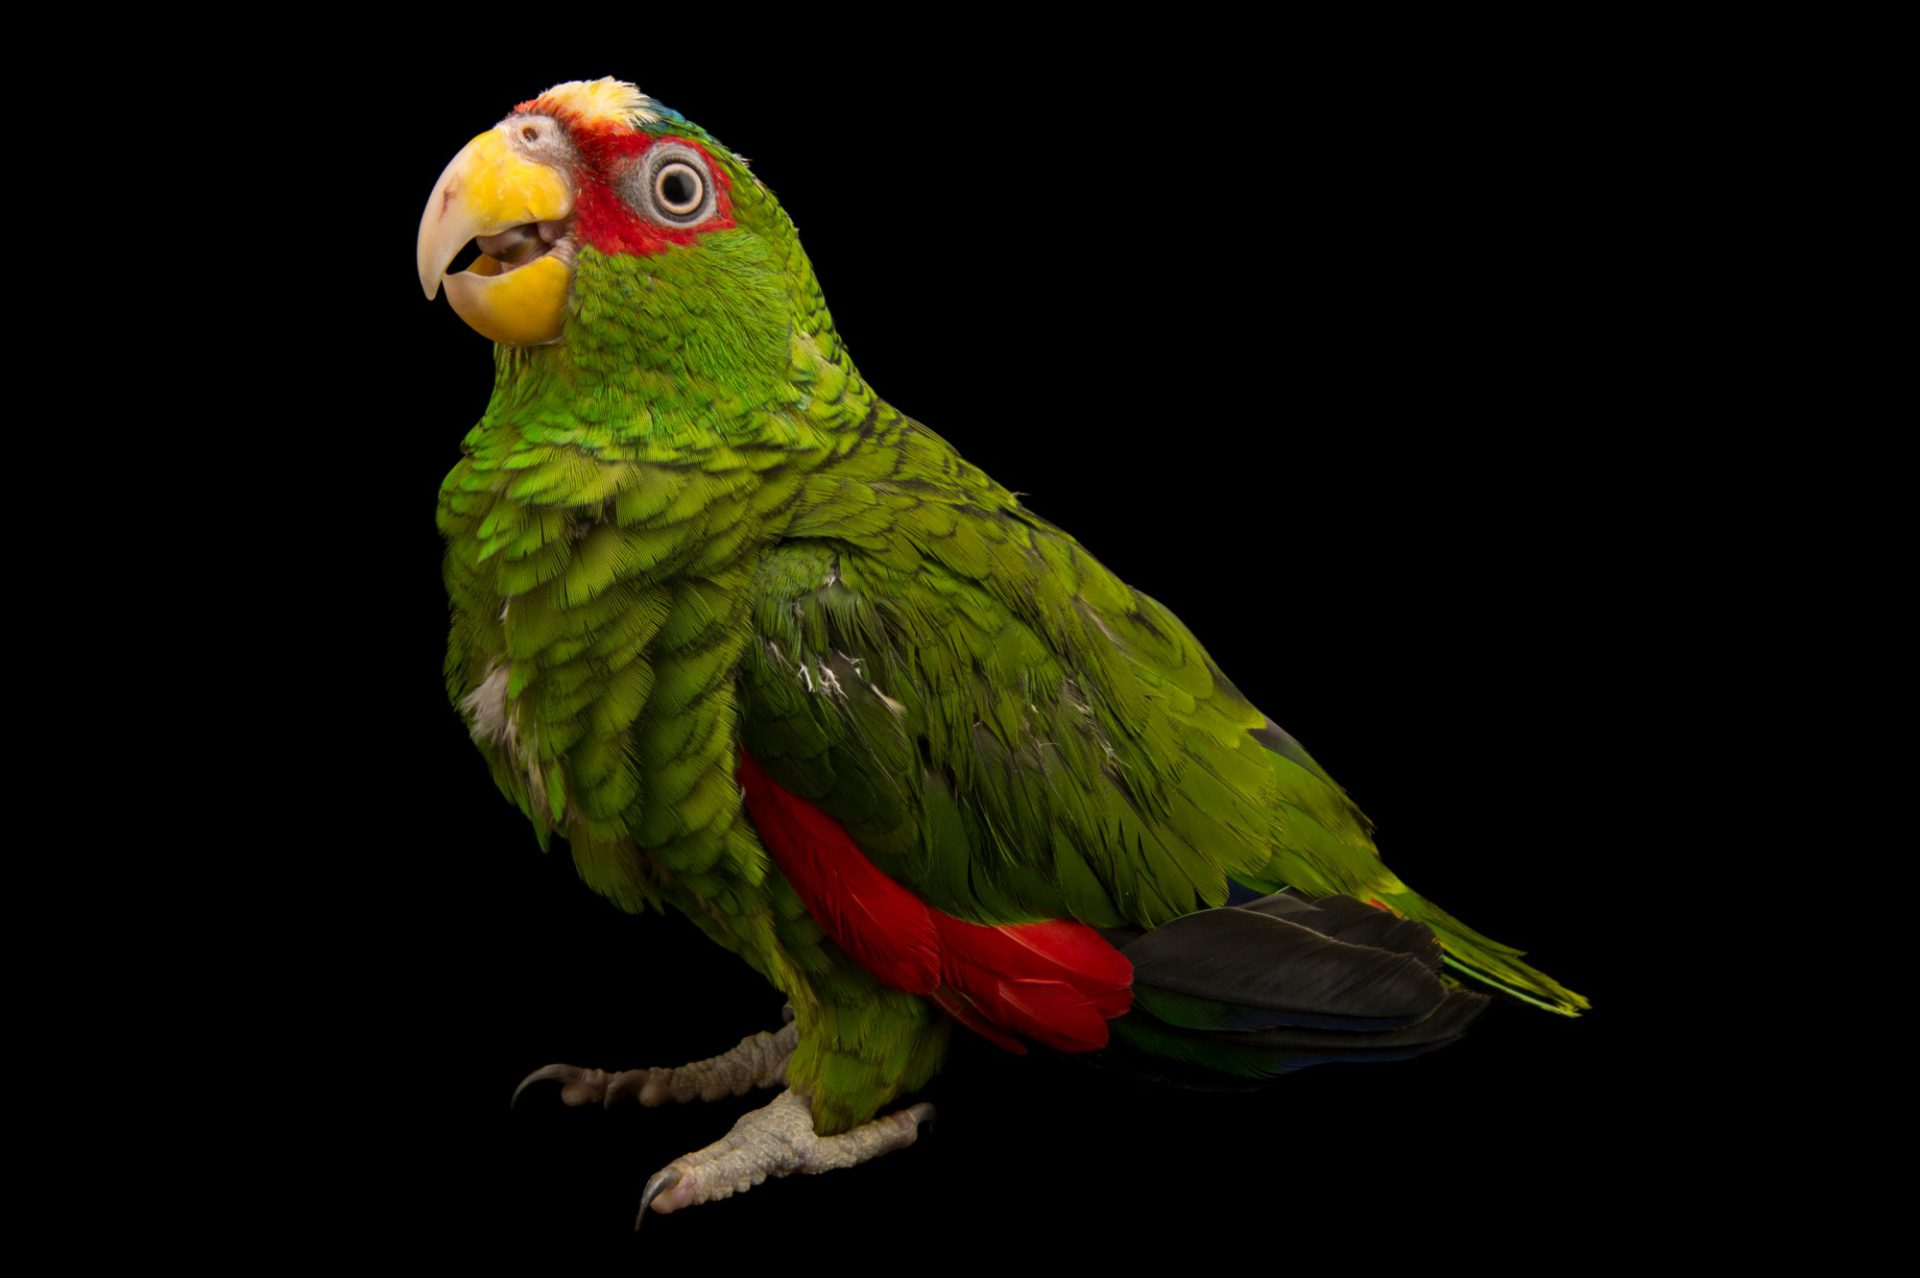 Photo: White-fronted Amazon (Amazona albifrons nana) in Choussy, France.